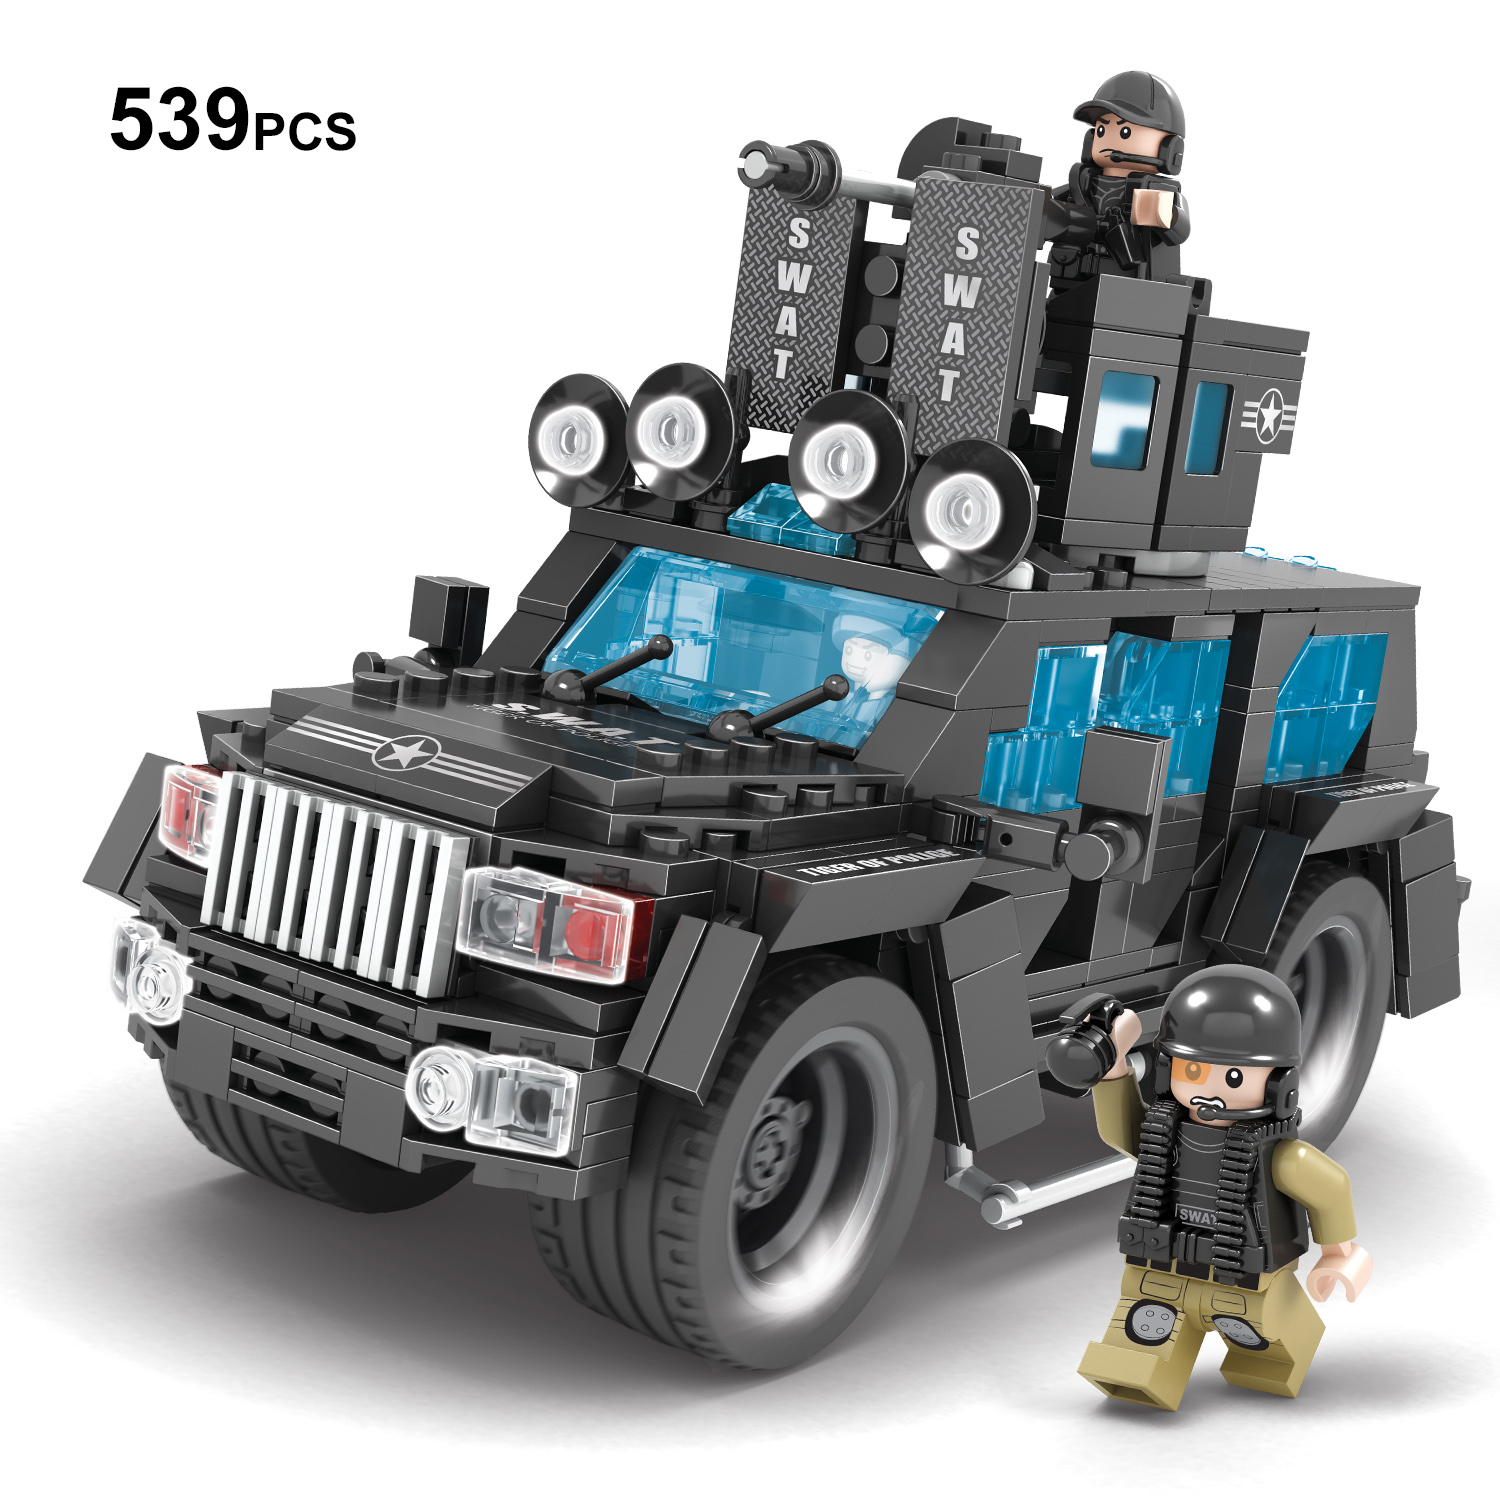 539 Military SWAT Trucks Building Blocks Set,Police Jeep Building Bricks Toy with Figures,2 Different Design for Building police station swat hotel police doll military series 3d model building blocks construction eductional bricks building block set